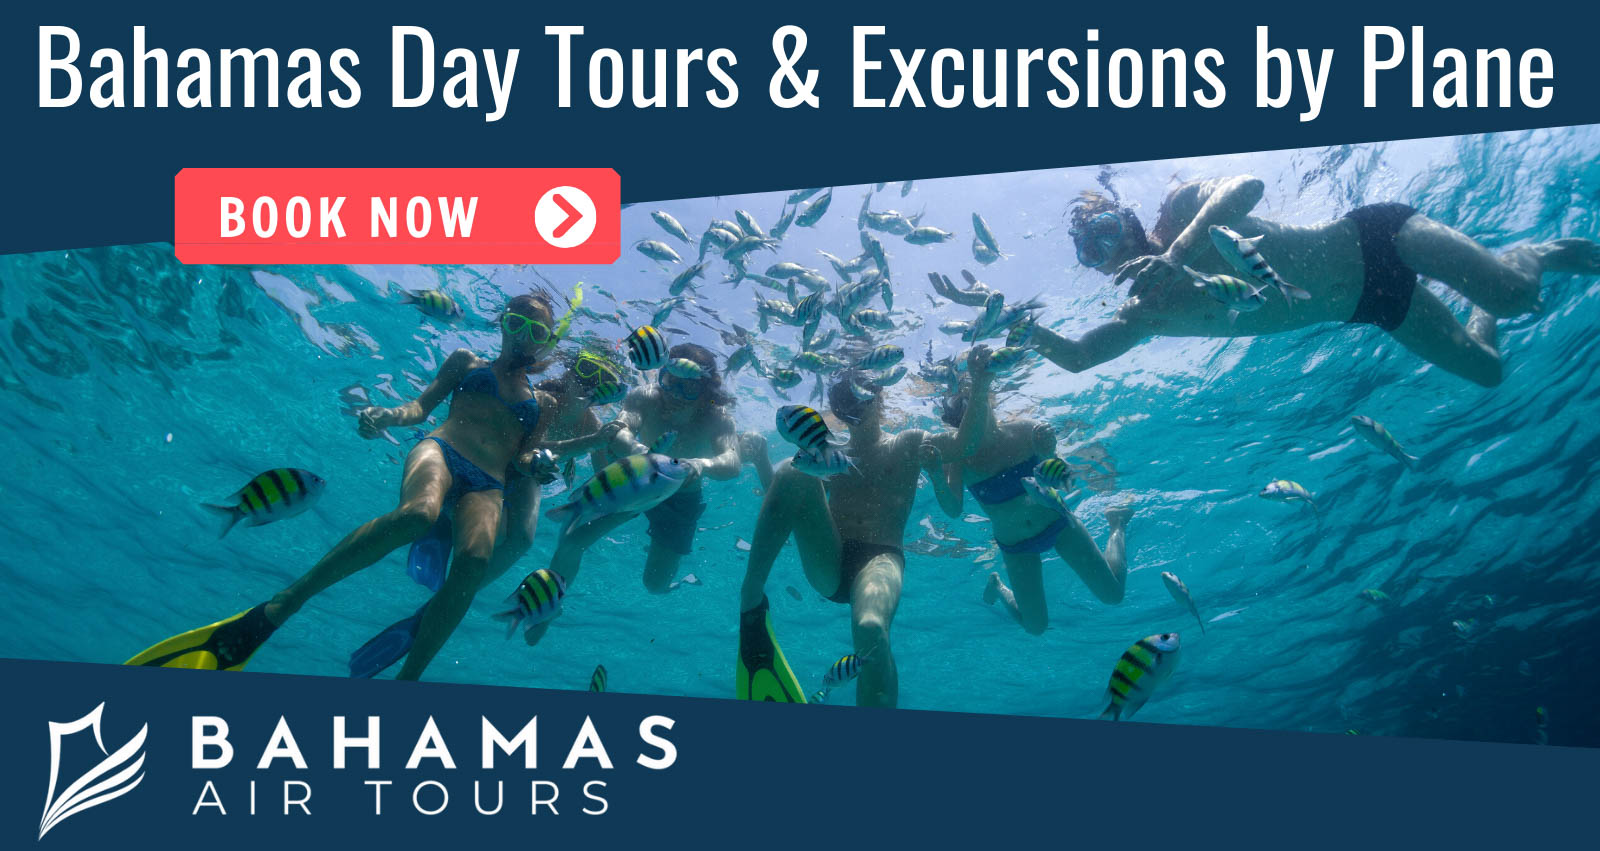 Bahamas Day Trips Excursions by Plane with Bahamas Air Tours. Discover Staniel Cay in Exuma Bahamas